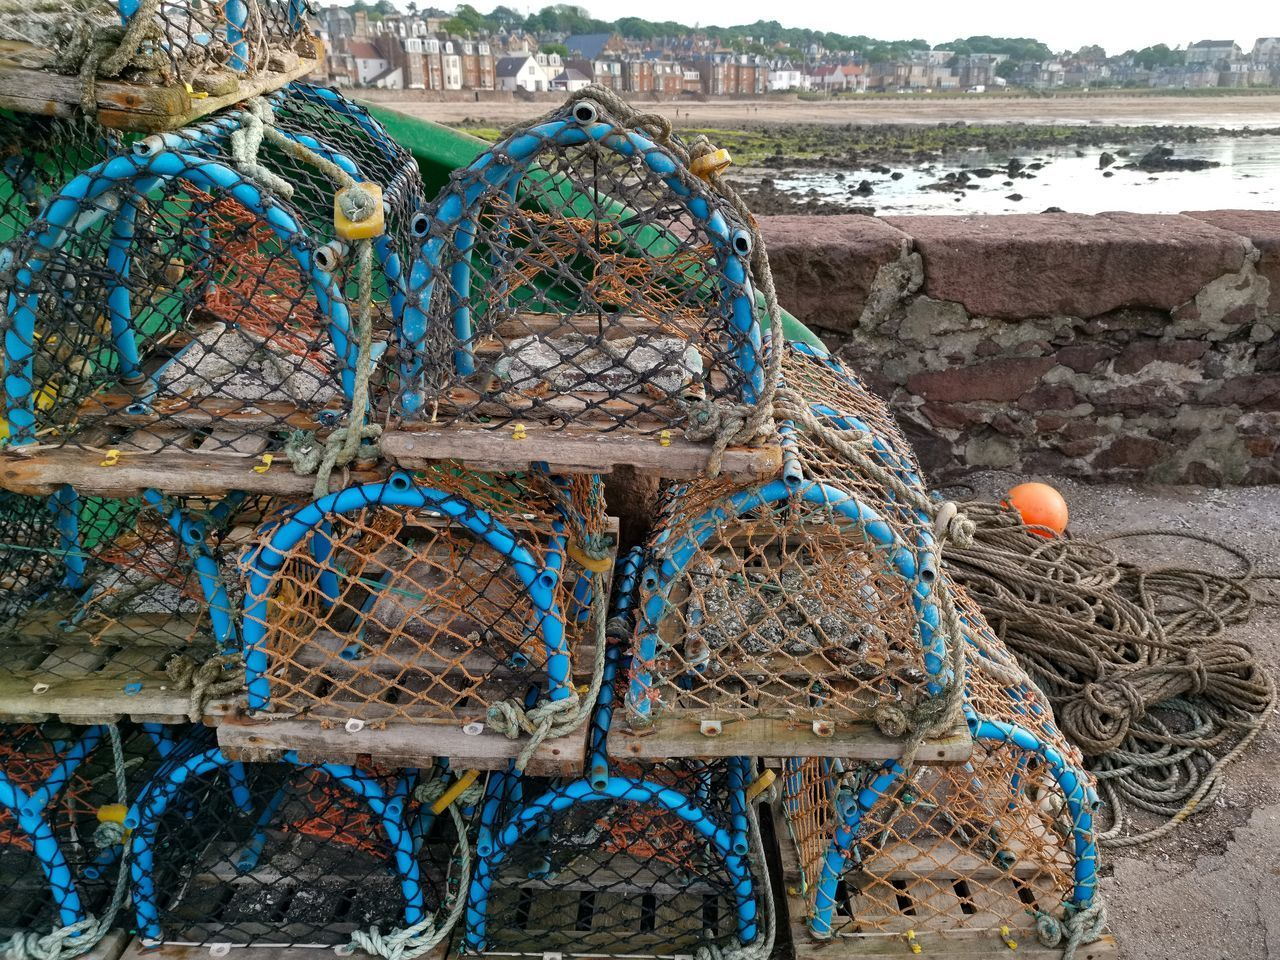 STACK OF FISHING NET